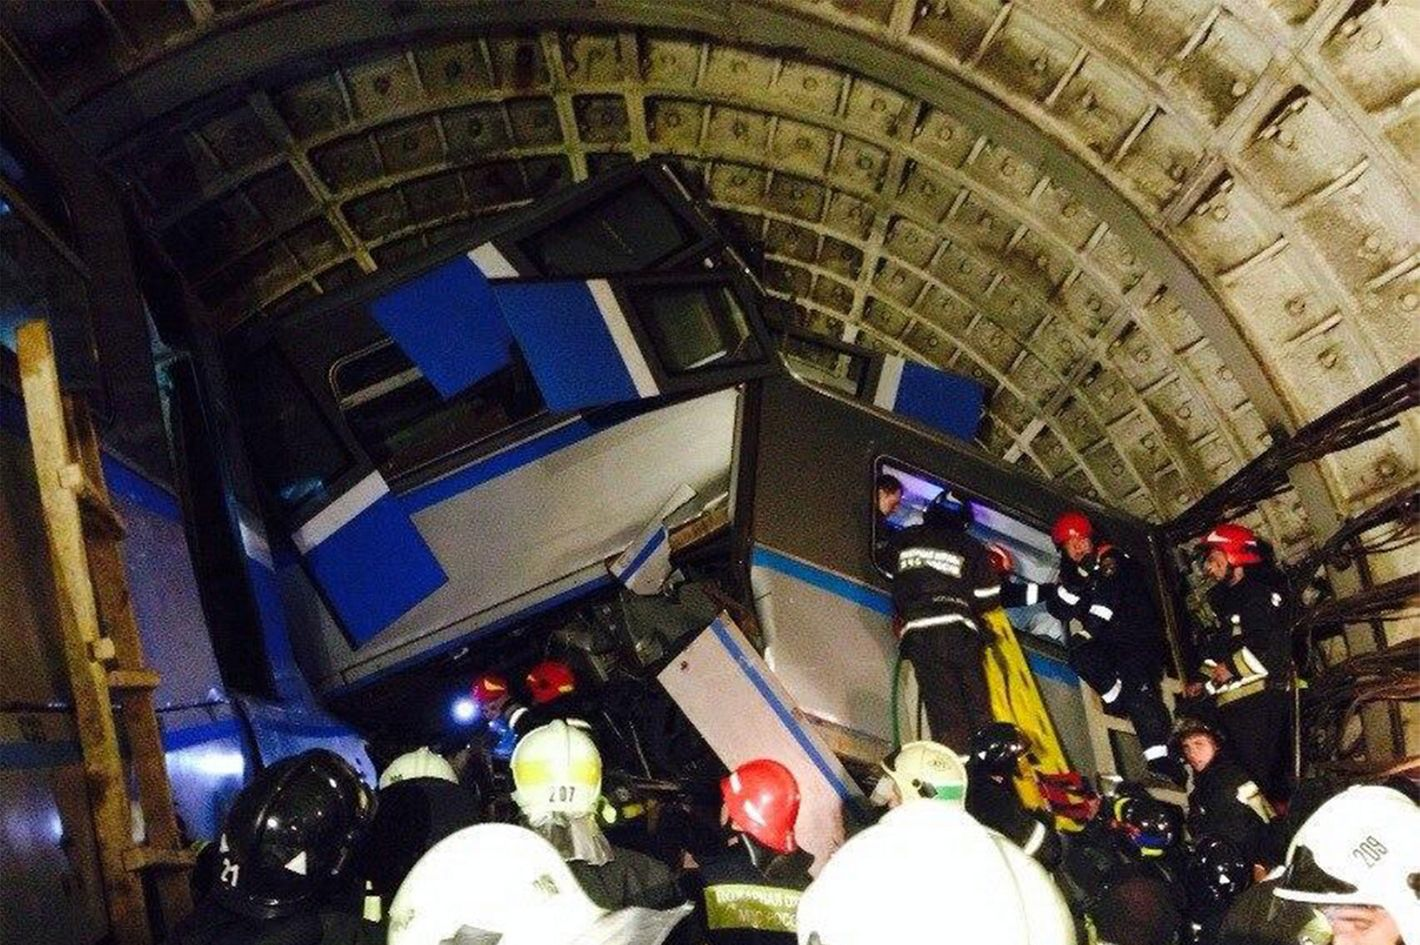 15 Jul 2014, Russia --- ITAR-TASS: MOSCOW, RUSSIA. JULY 15, 2014. At the site of a crash on the Moscow metro. Several cars derailed 200 meters away from Slavyansky Bulvar Metro Station. (Photo ITAR-TASS/ picture taken with a mobile phone/ Varya Valovil) --- Image by ? Valovil Varya/ITAR-TASS Photo/Corbis